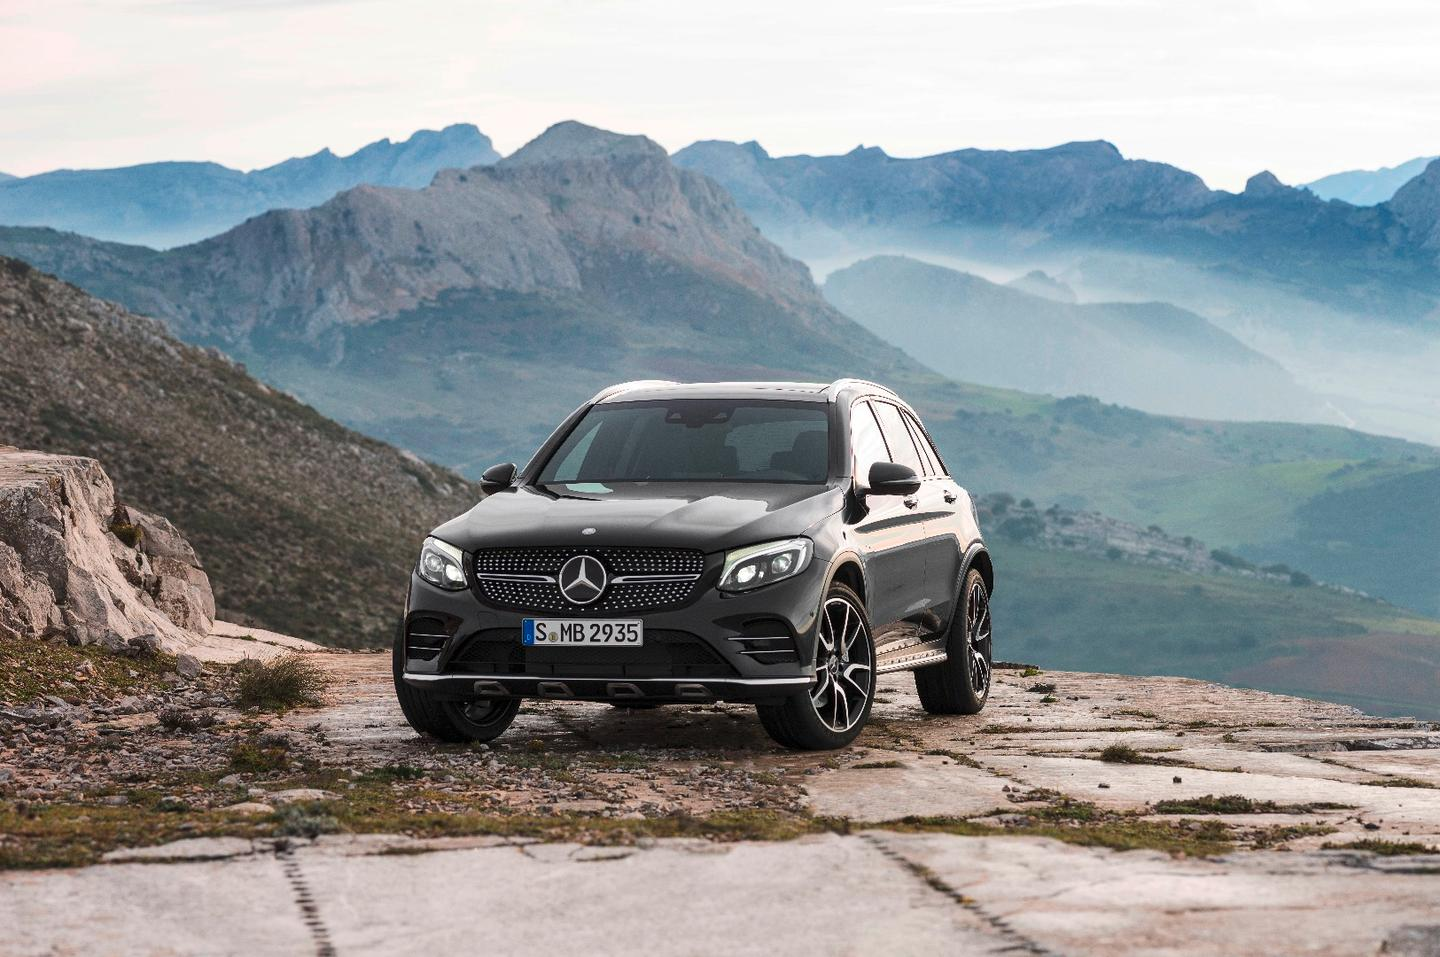 The Mercedes-AMG GLC43 is powered by a 3.0-liter V6 motor putting out 270 kW